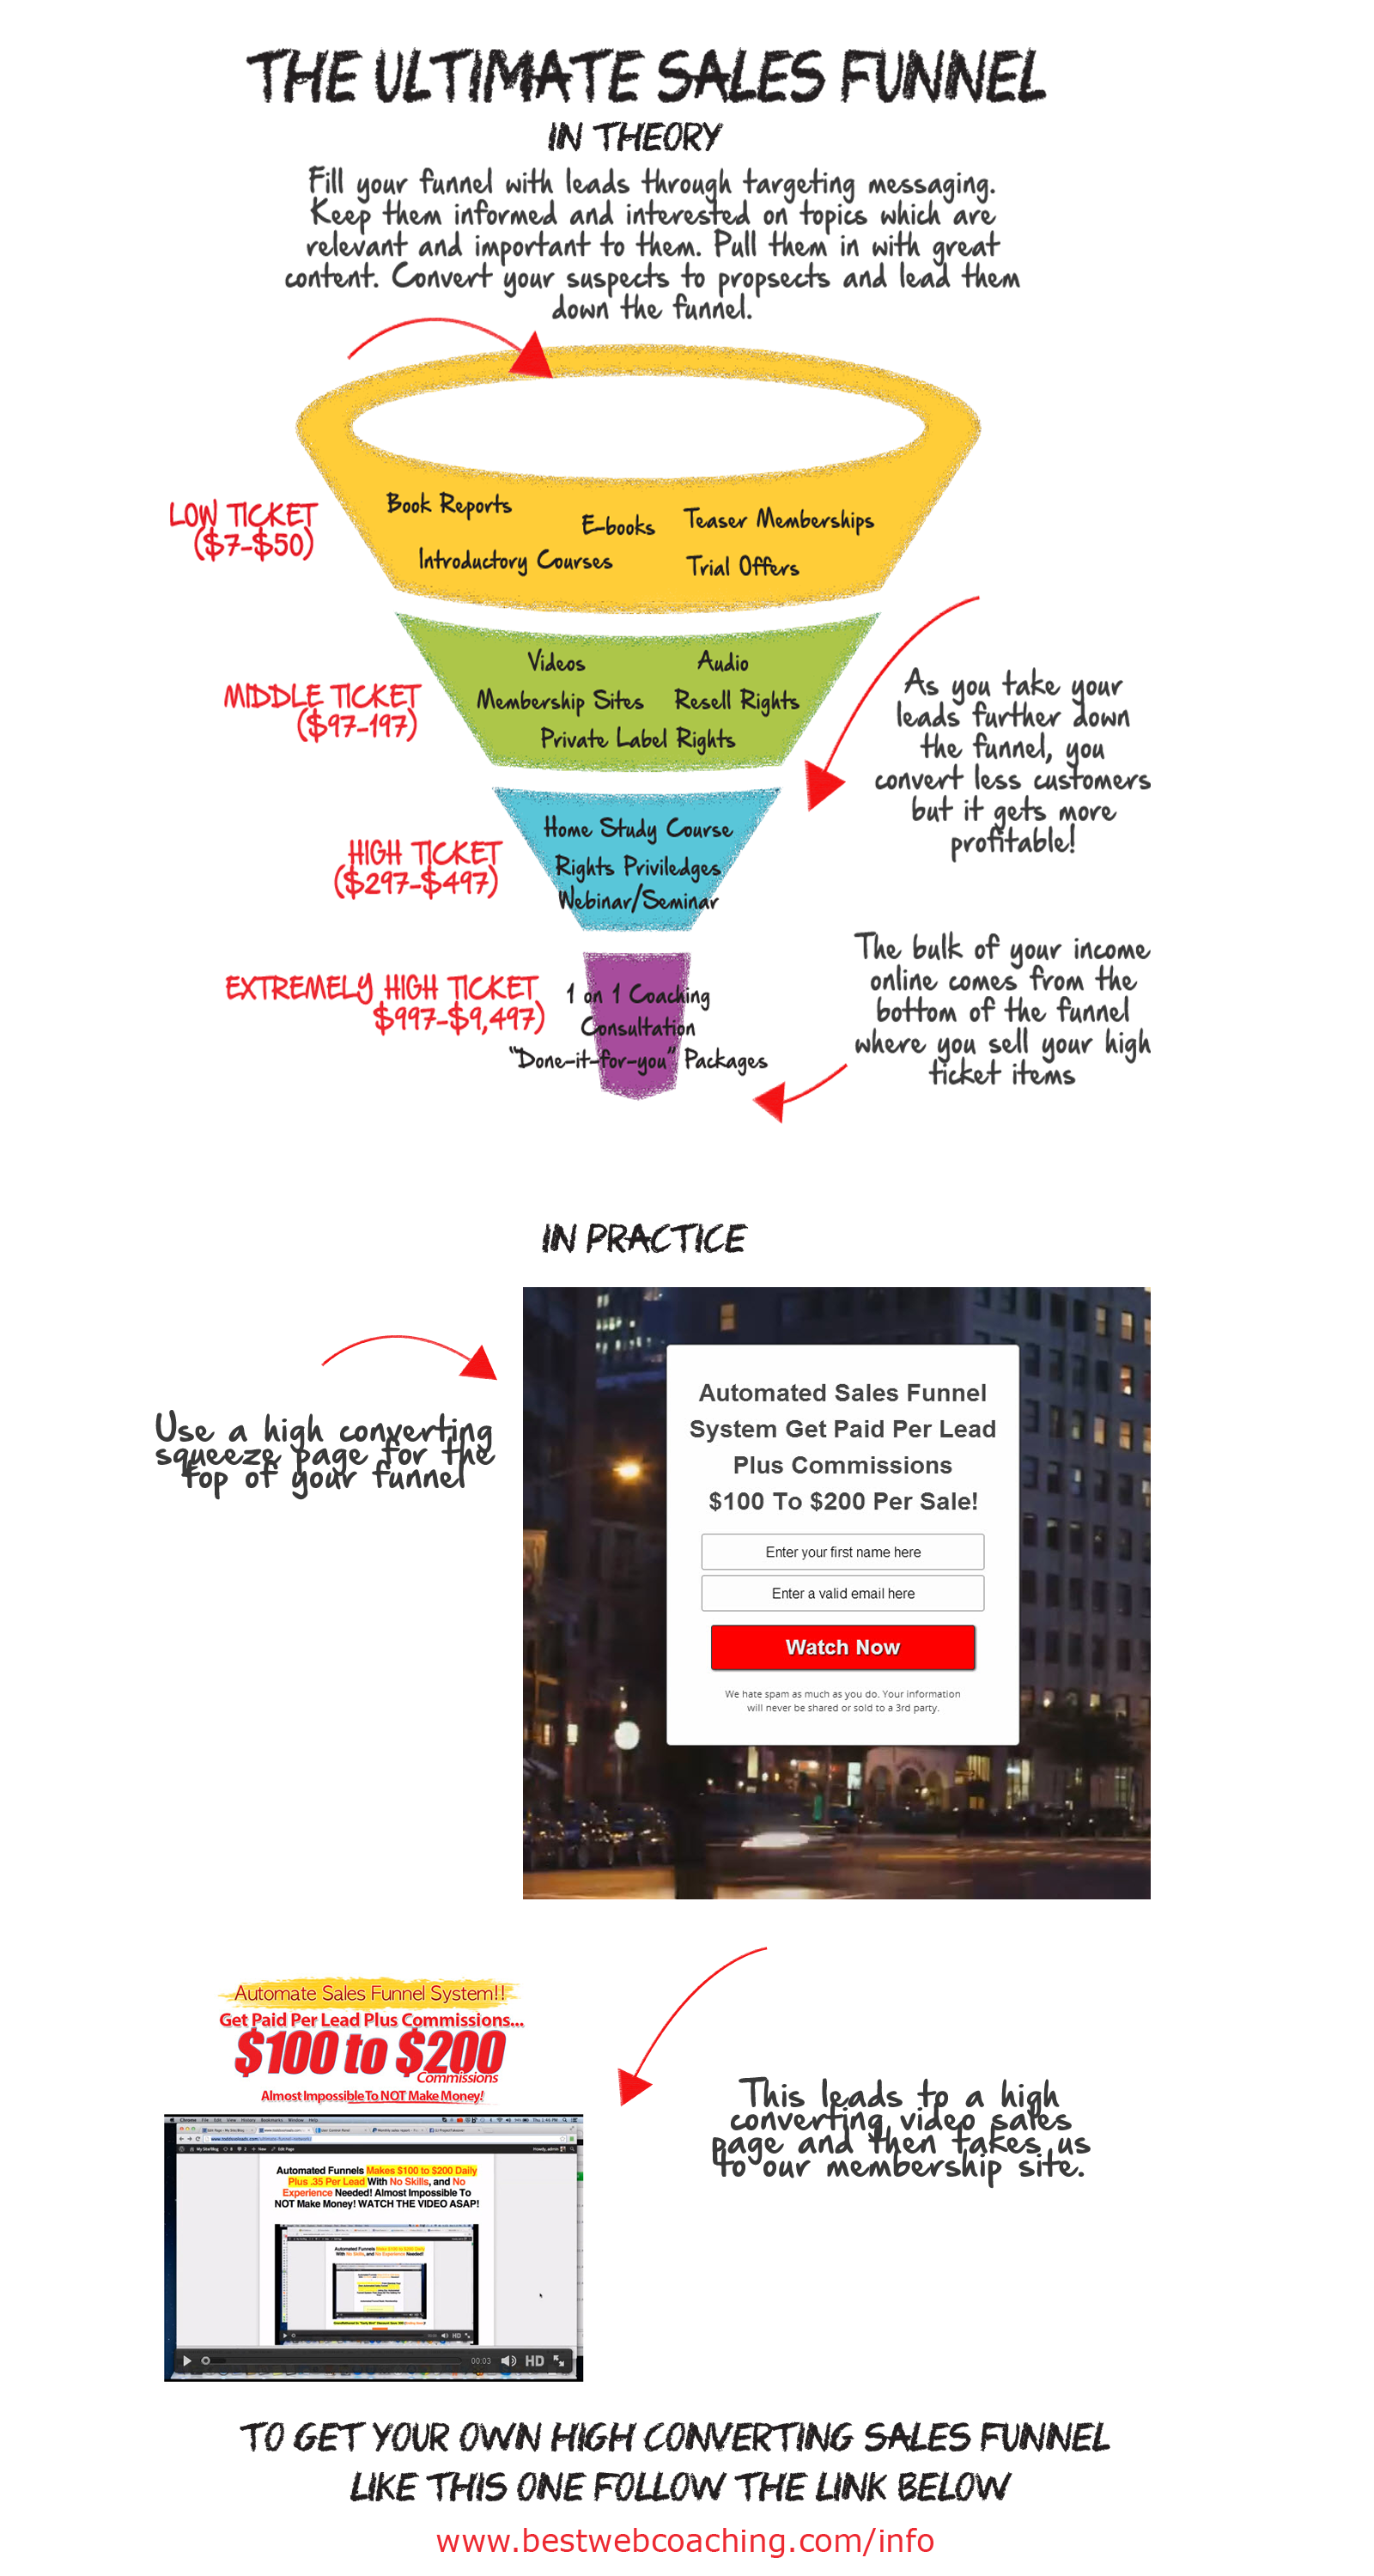 The Ultimate Sales Funnel A Great Example Of The Theory Behind A